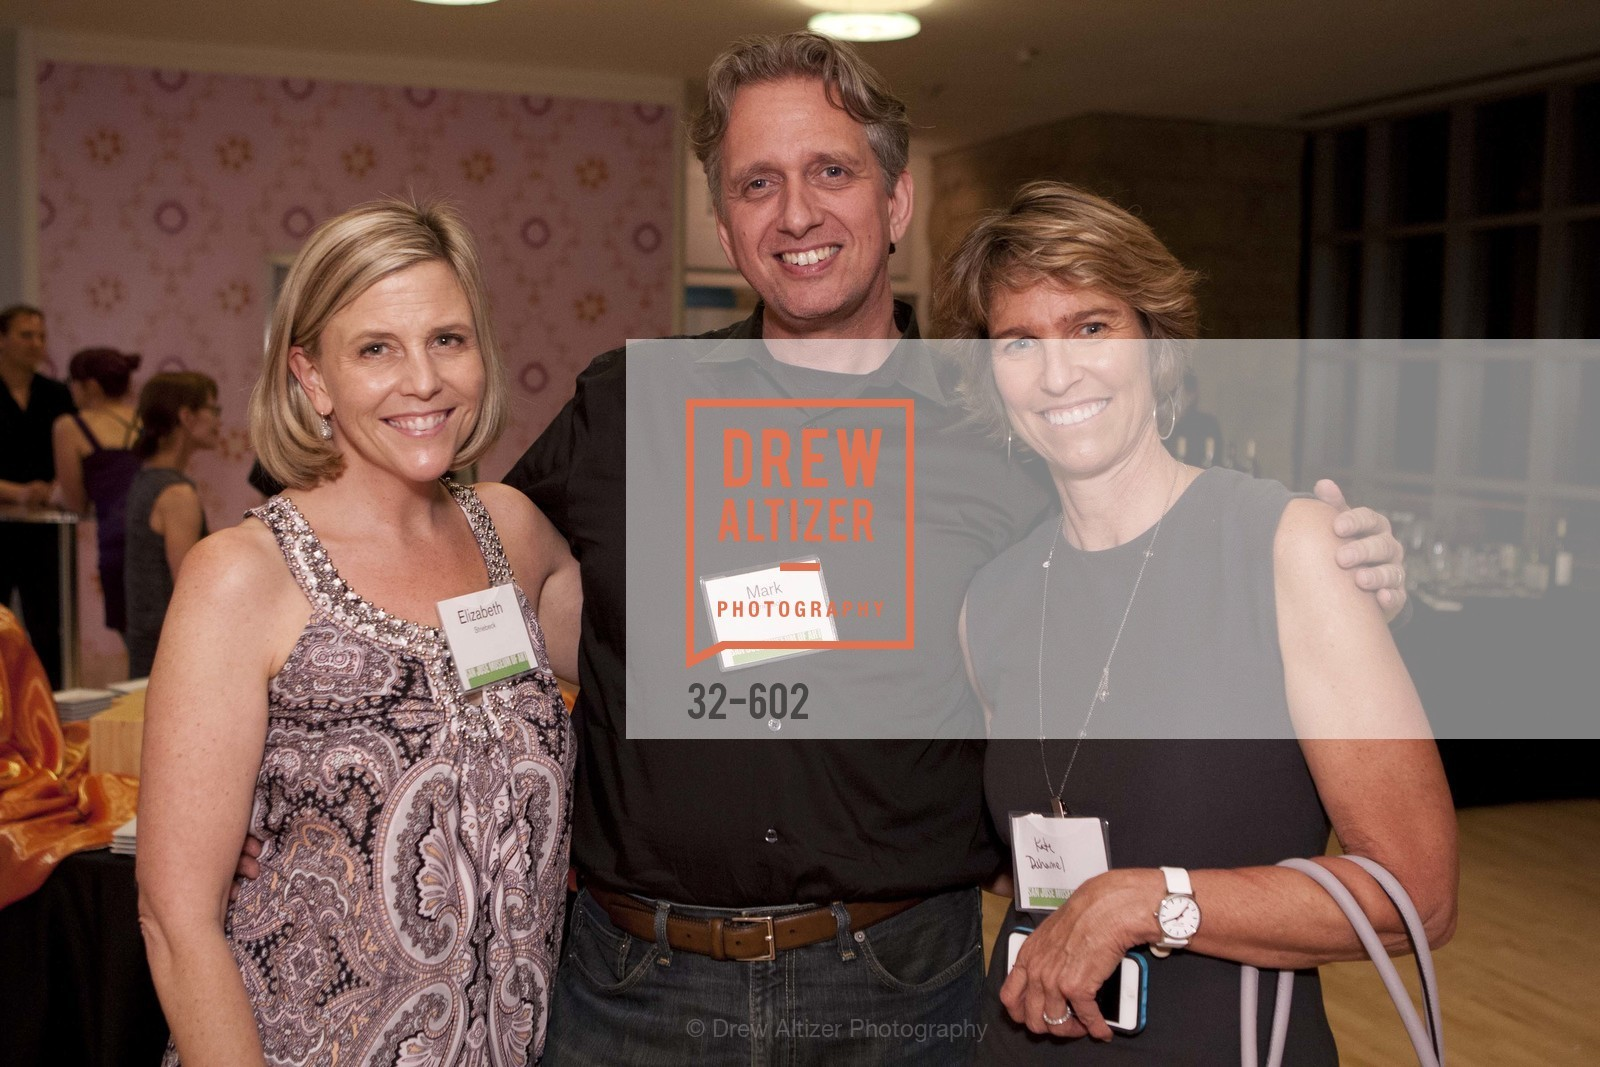 Elizabeth Striebeck, Mark Striebeck, Kate Duhamel, SAN JOSE MUSEUM OF ART Fall Reception Opening, US, October 8th, 2014,Drew Altizer, Drew Altizer Photography, full-service agency, private events, San Francisco photographer, photographer california